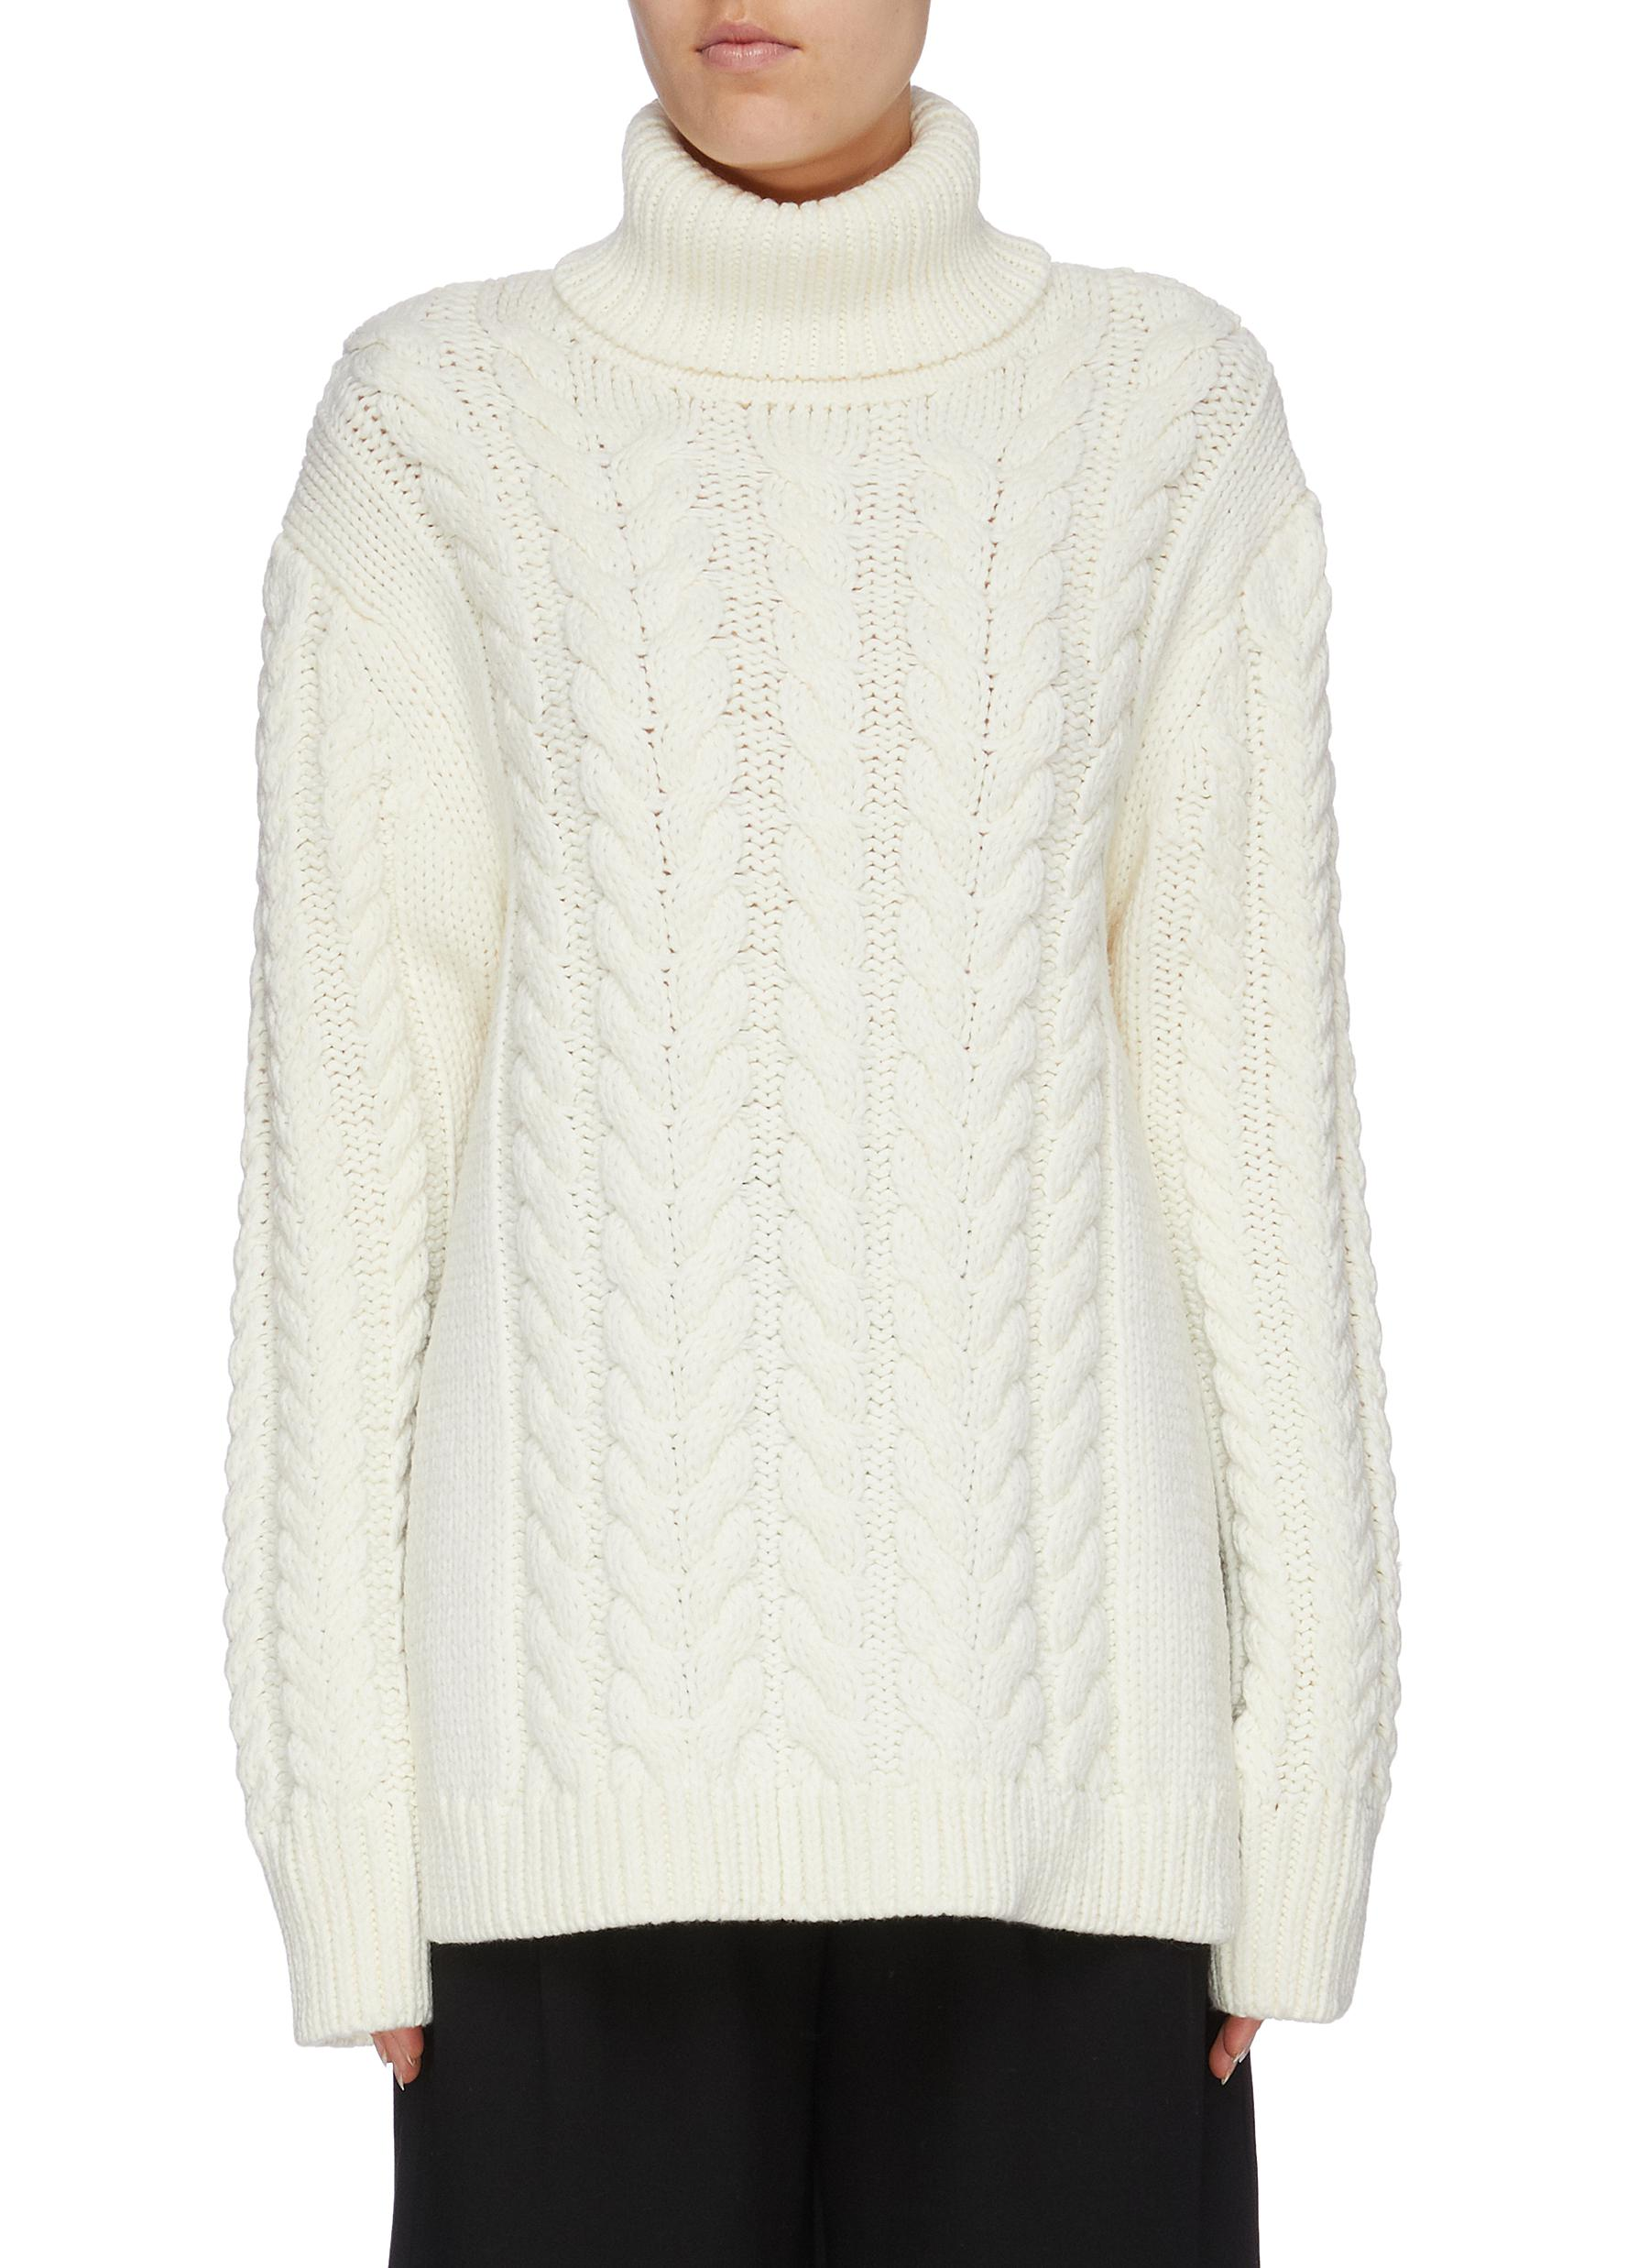 Buckle cutout back cable knit turtleneck sweater by Tibi